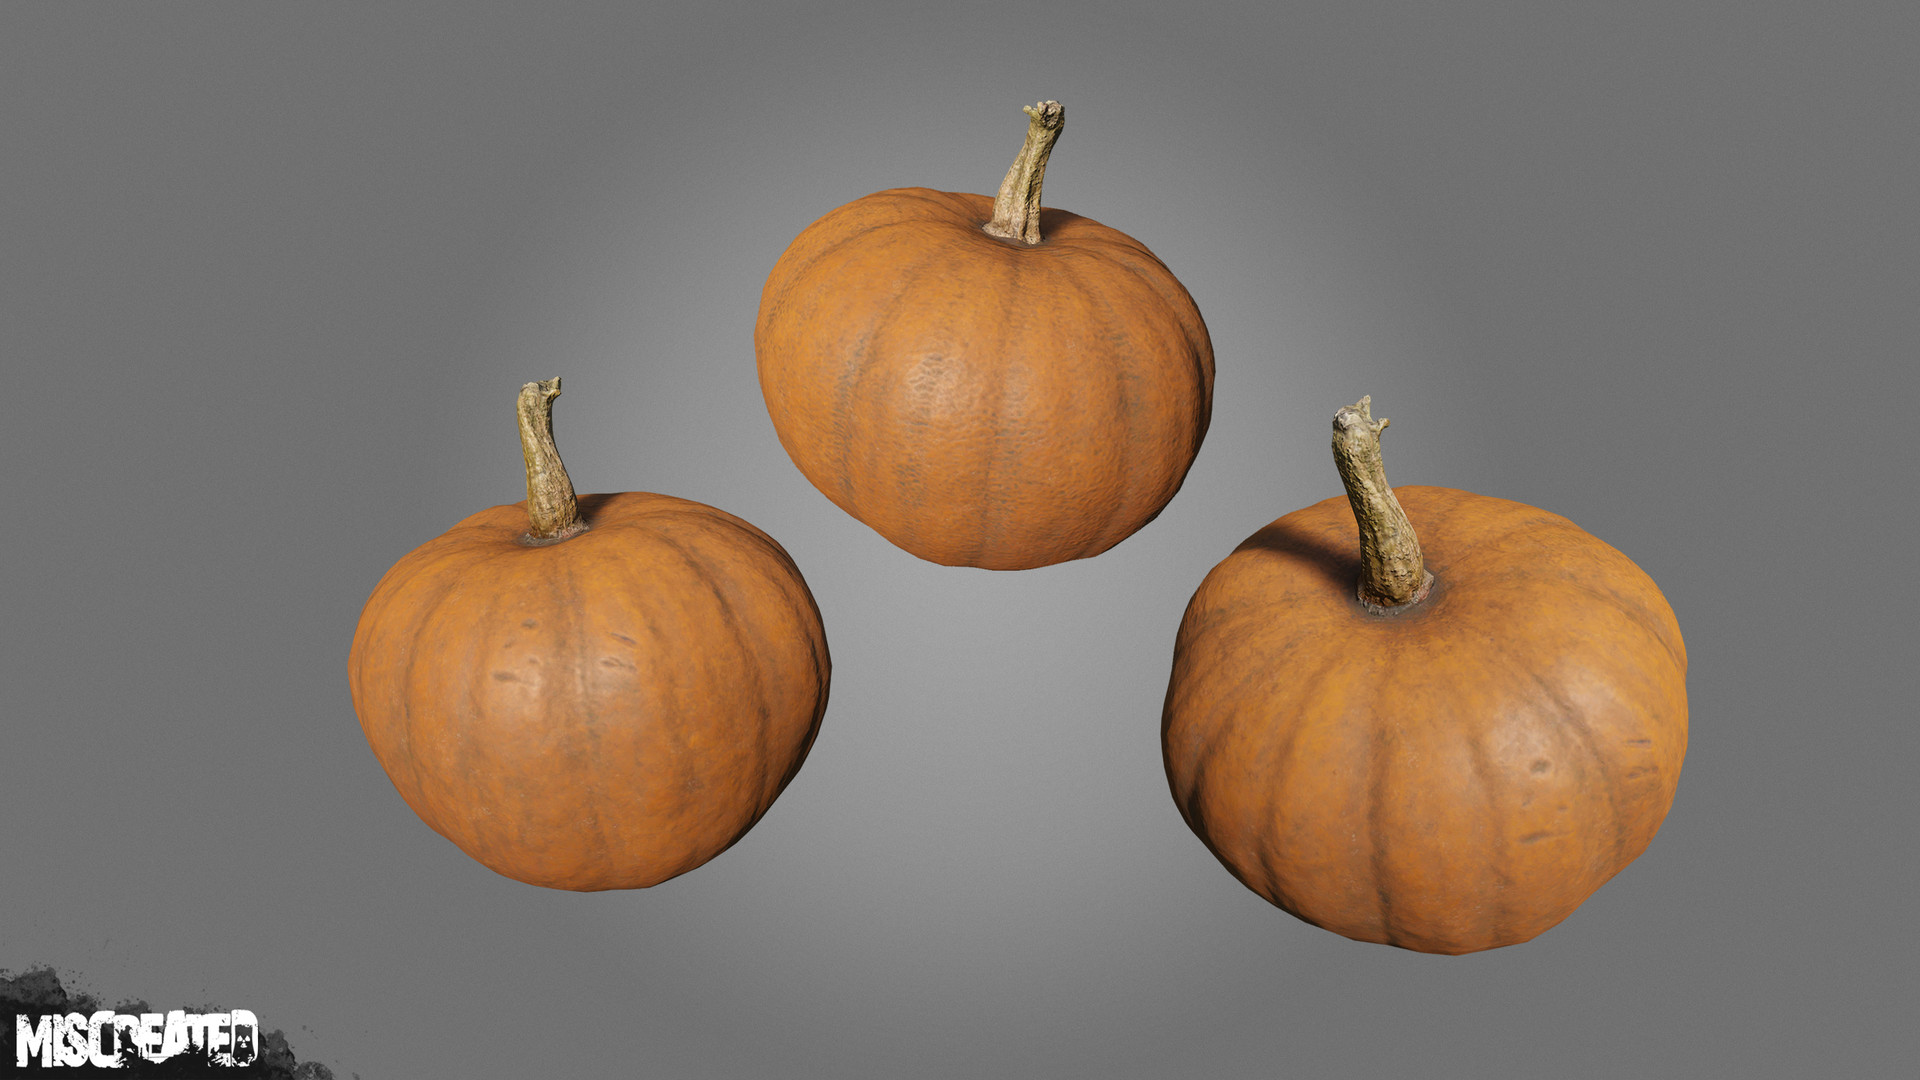 Pumpkin consumable, used as a food item or craftable for clothing or base item